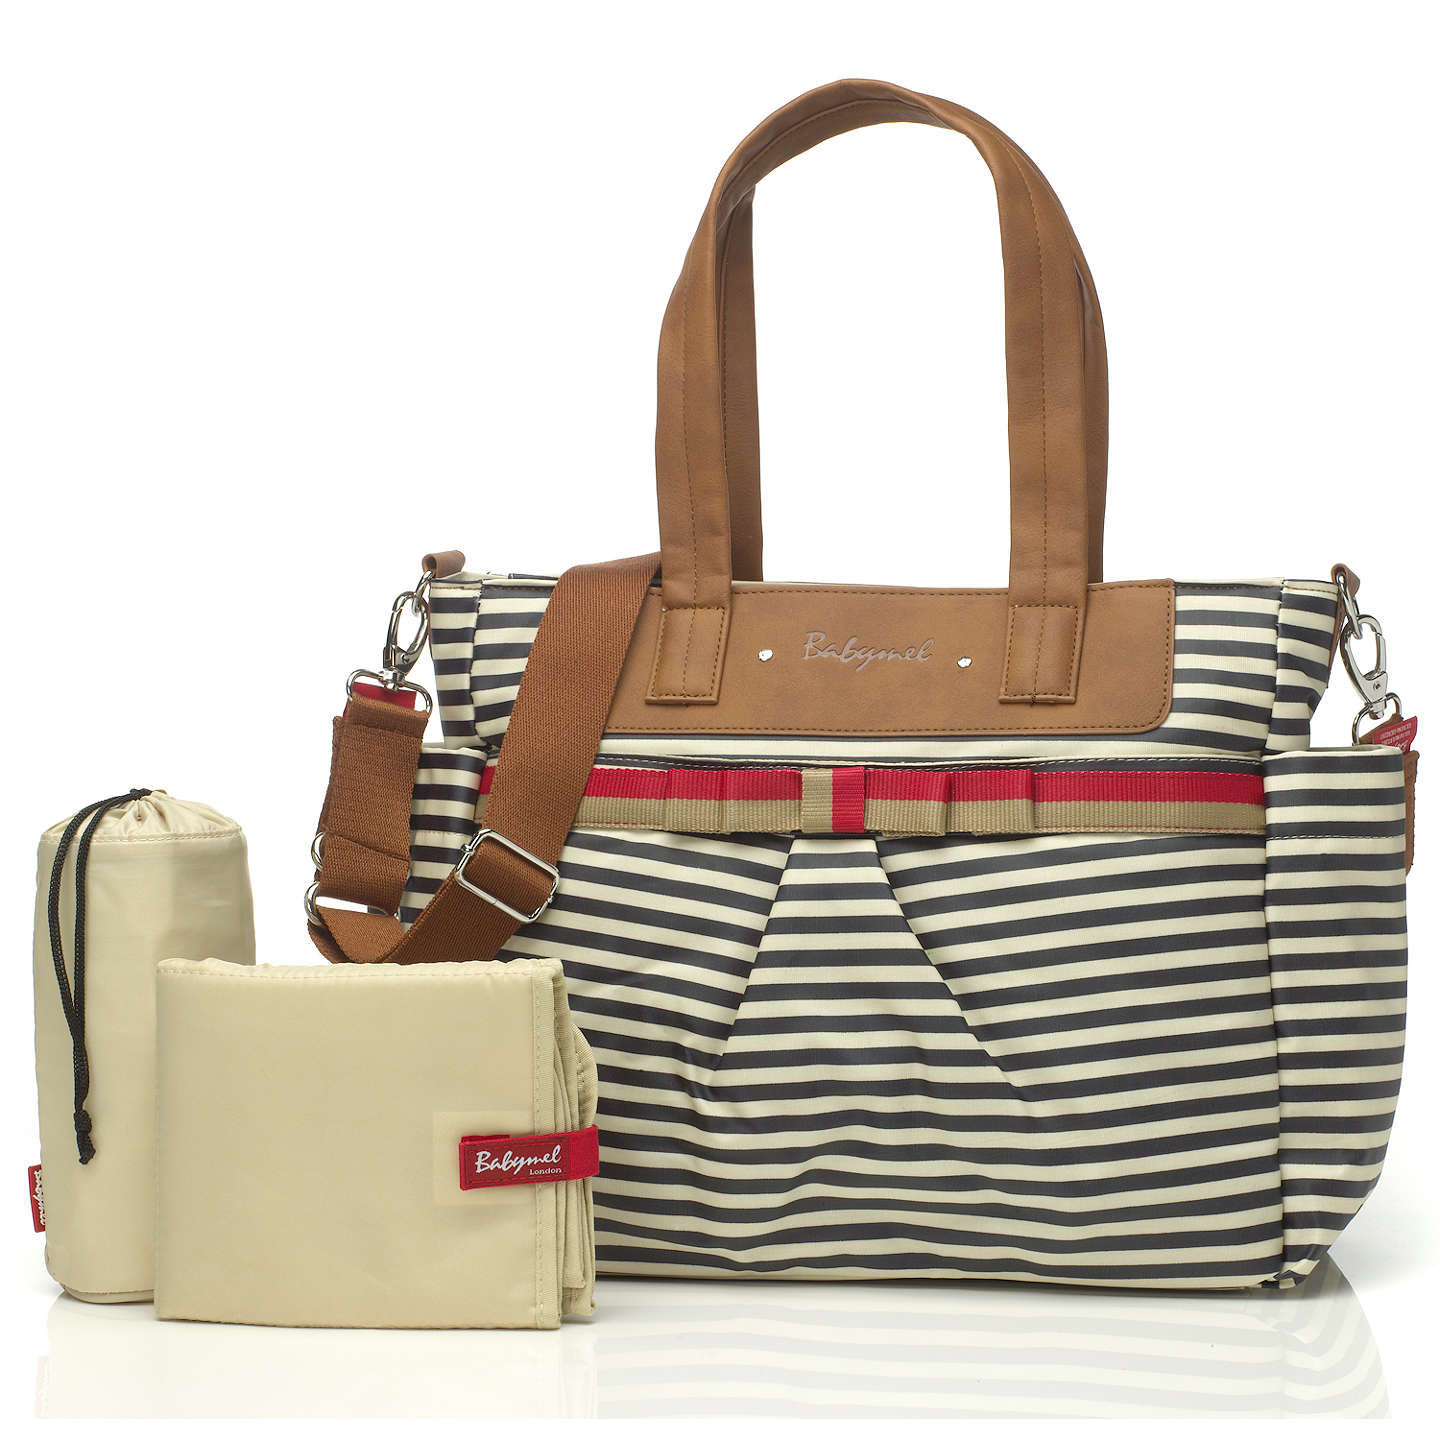 BuyBabymel Cara Changing Bag, Navy Stripe Online at johnlewis.com